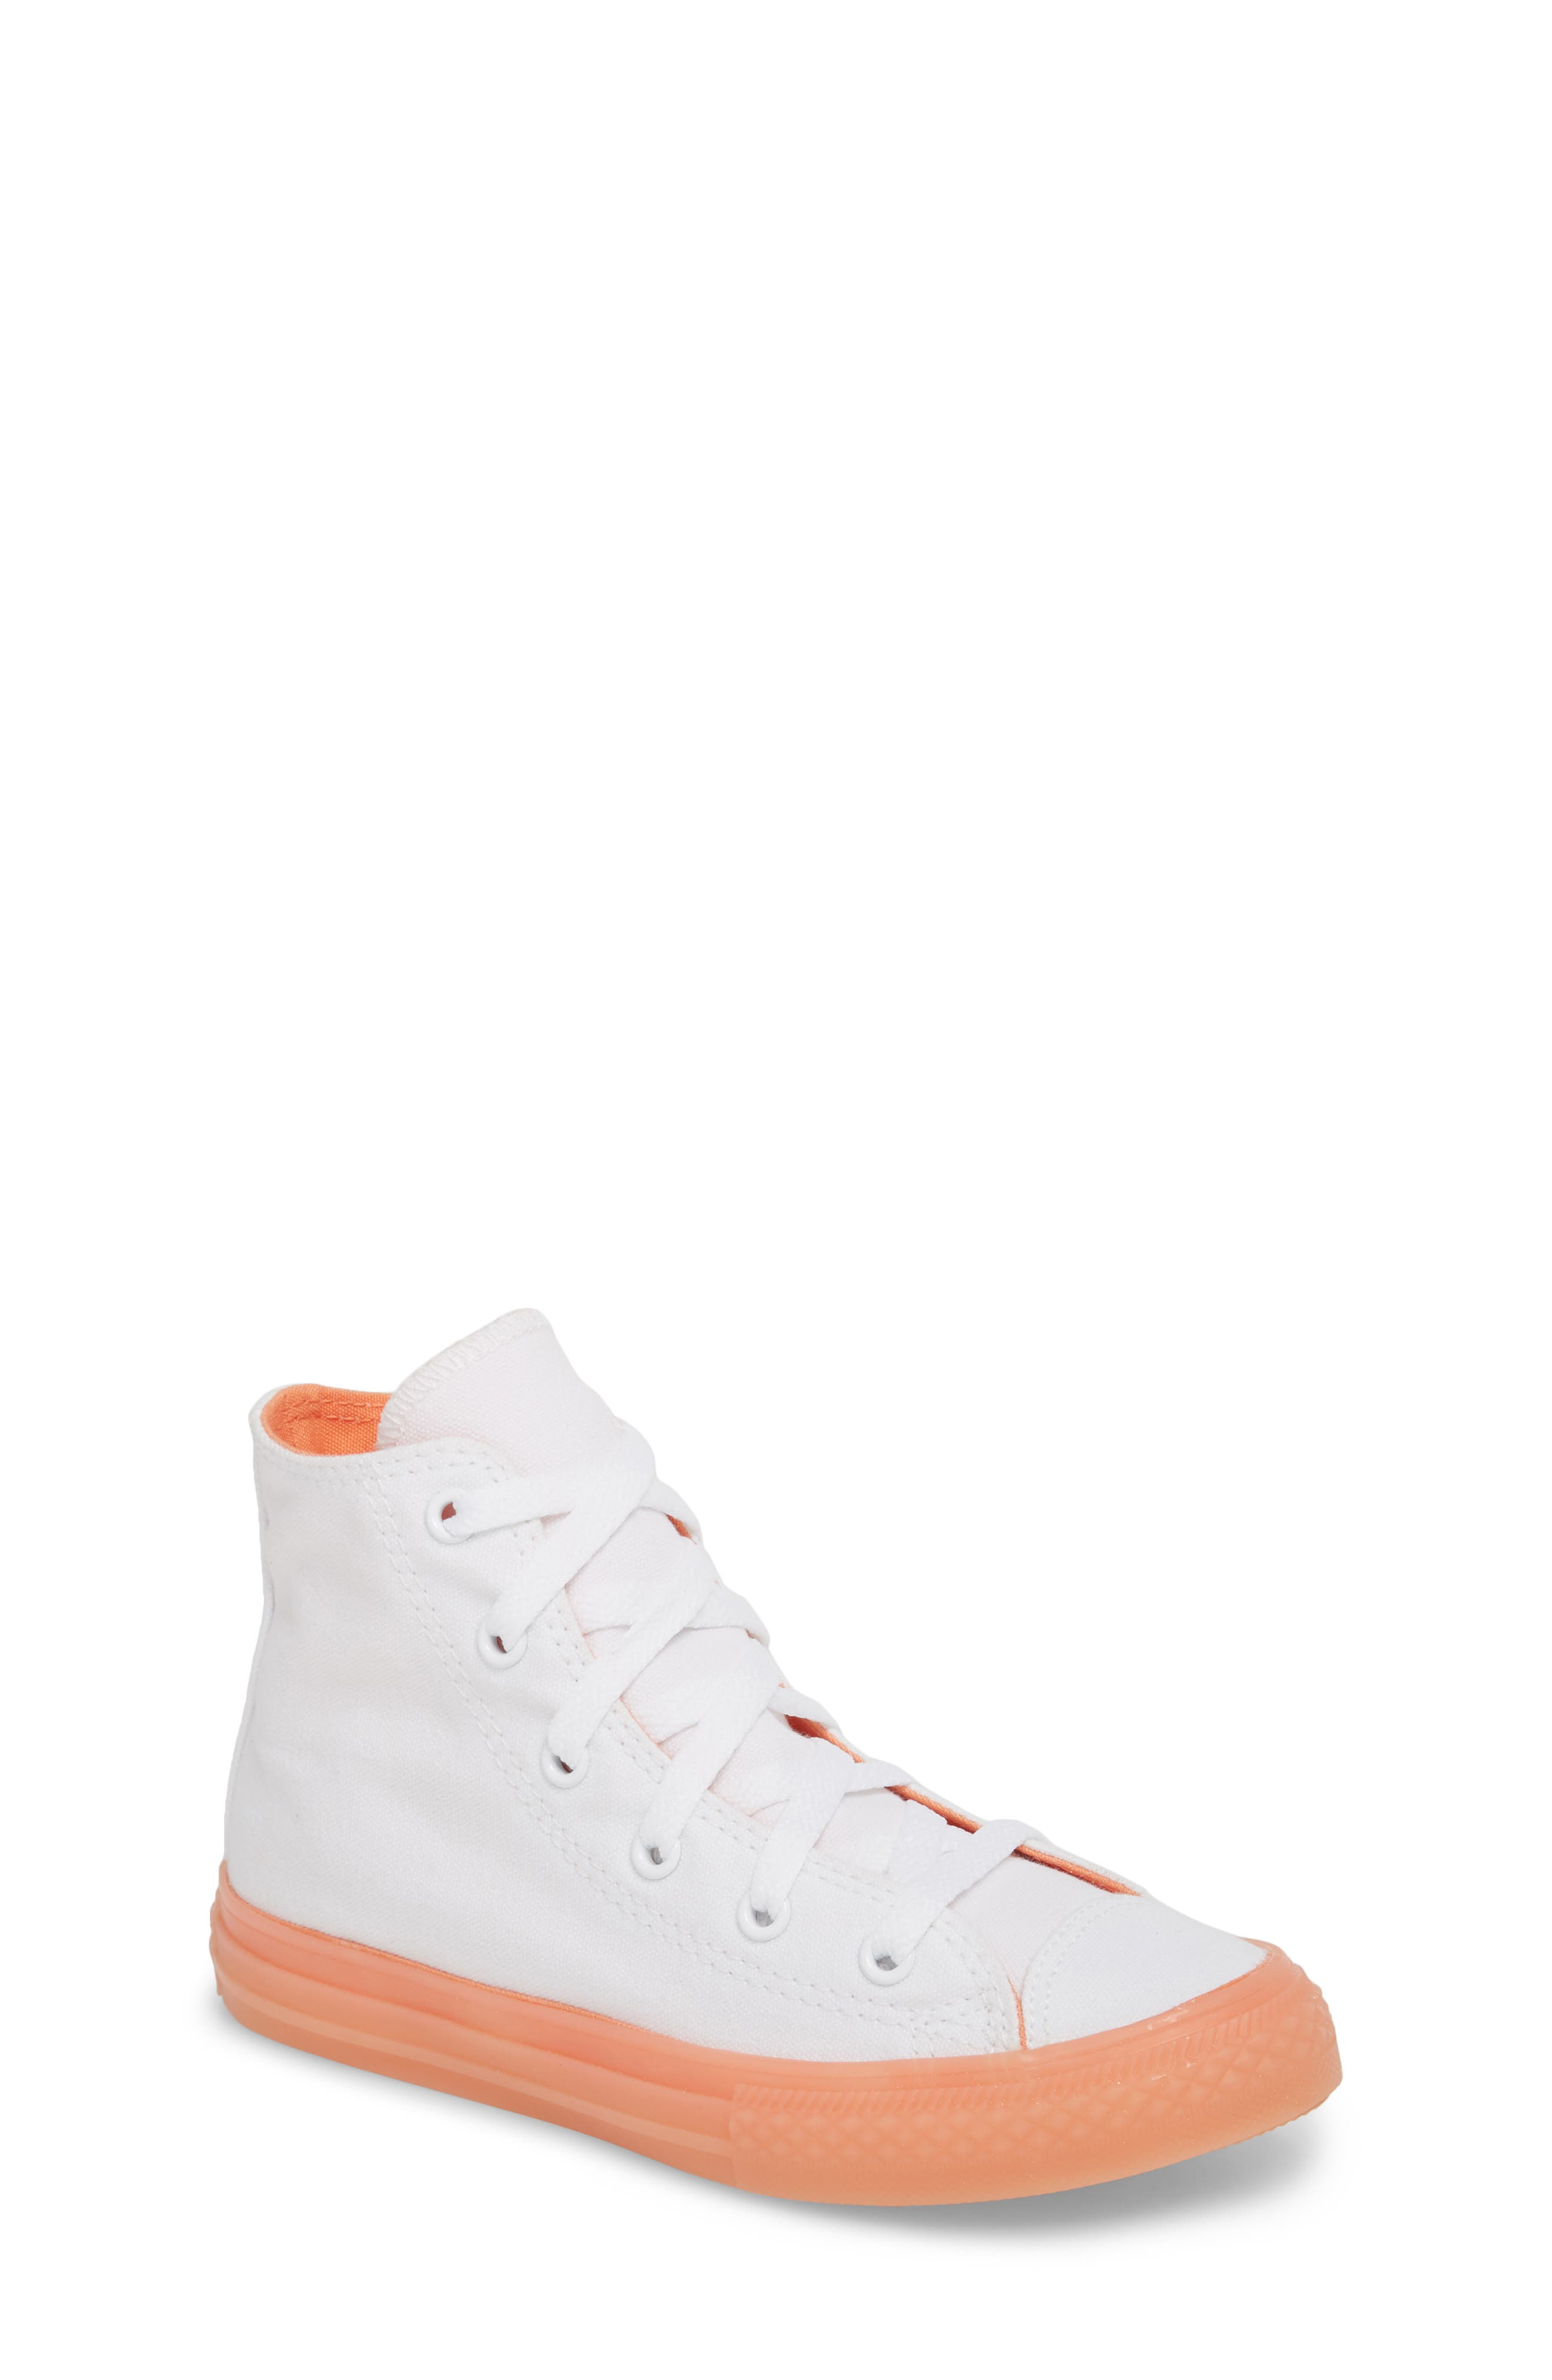 Chuck Taylor<sup>®</sup> All Star<sup>®</sup> Jelly High Top Sneaker,                         Main,                         color, Orange